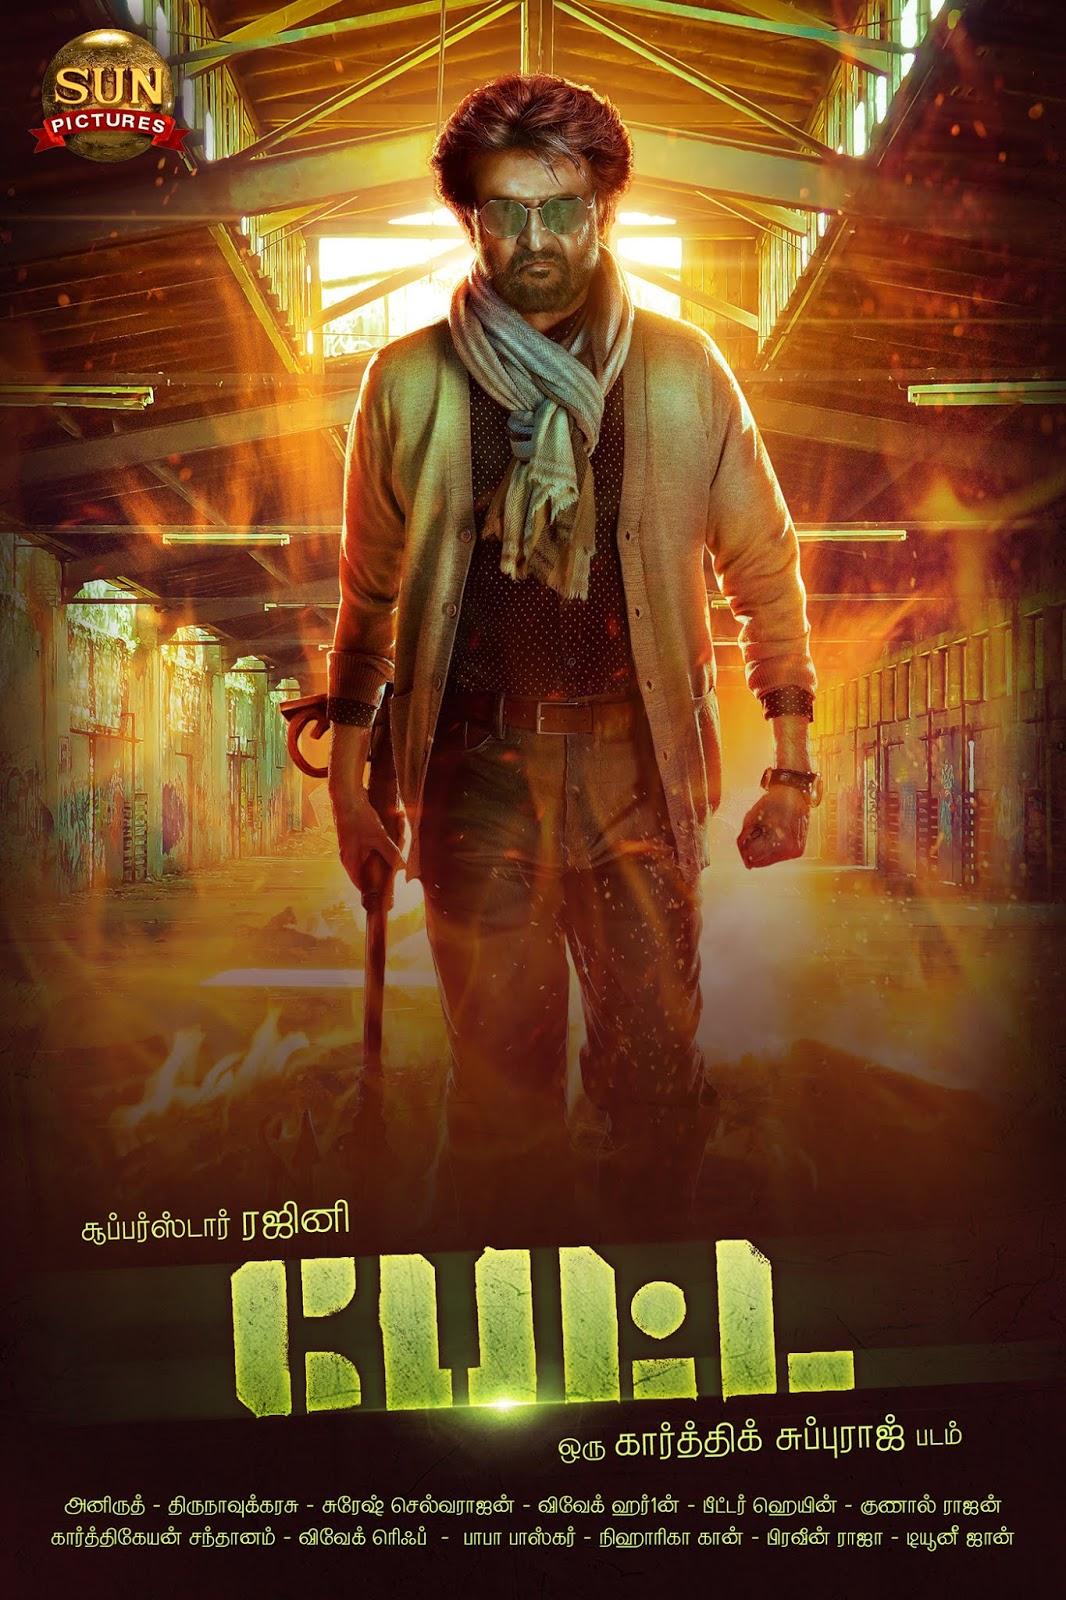 Petta - Rajnikant Full Hd Movie In Hindi  Petta Full Hd -2075